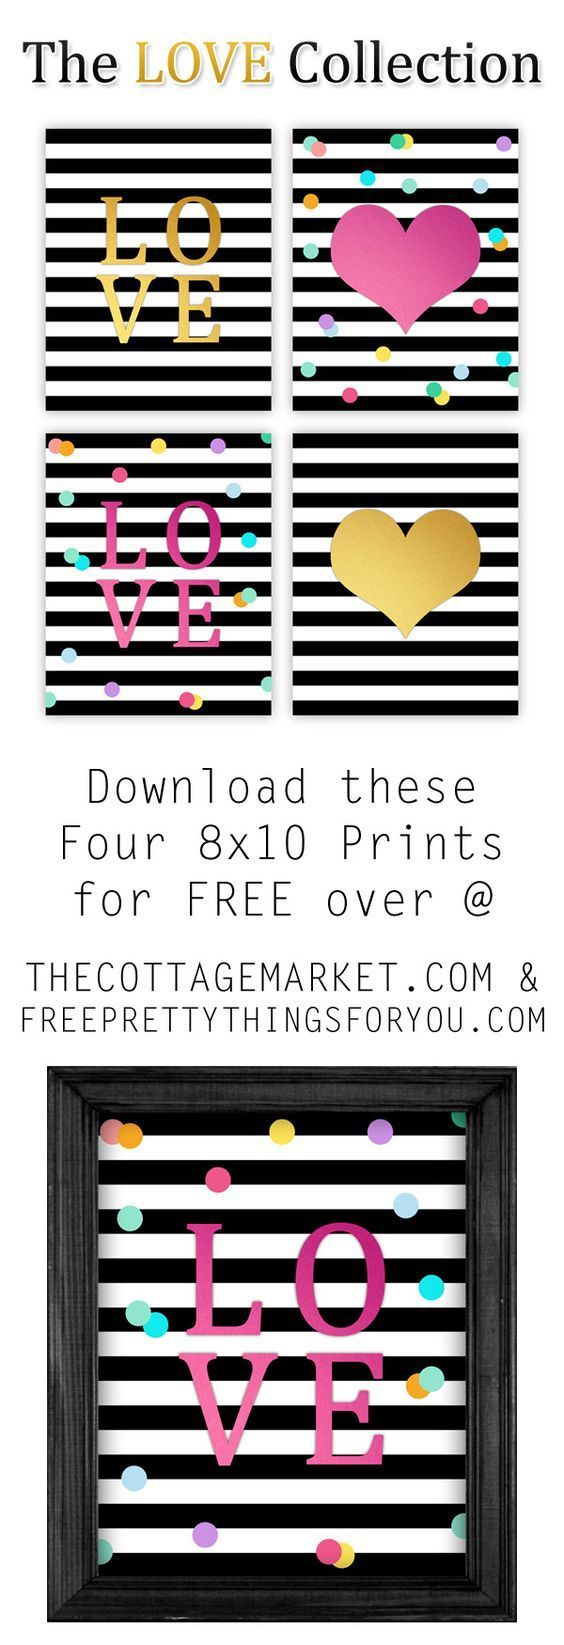 The+LOVE+Collection+Valentine's+Day+Art+FREE+Printables+to+frame+via+The+Cottage+Market+-+Prints:+8x10+Love+Printables-+Free+Pretty+Things+For+You